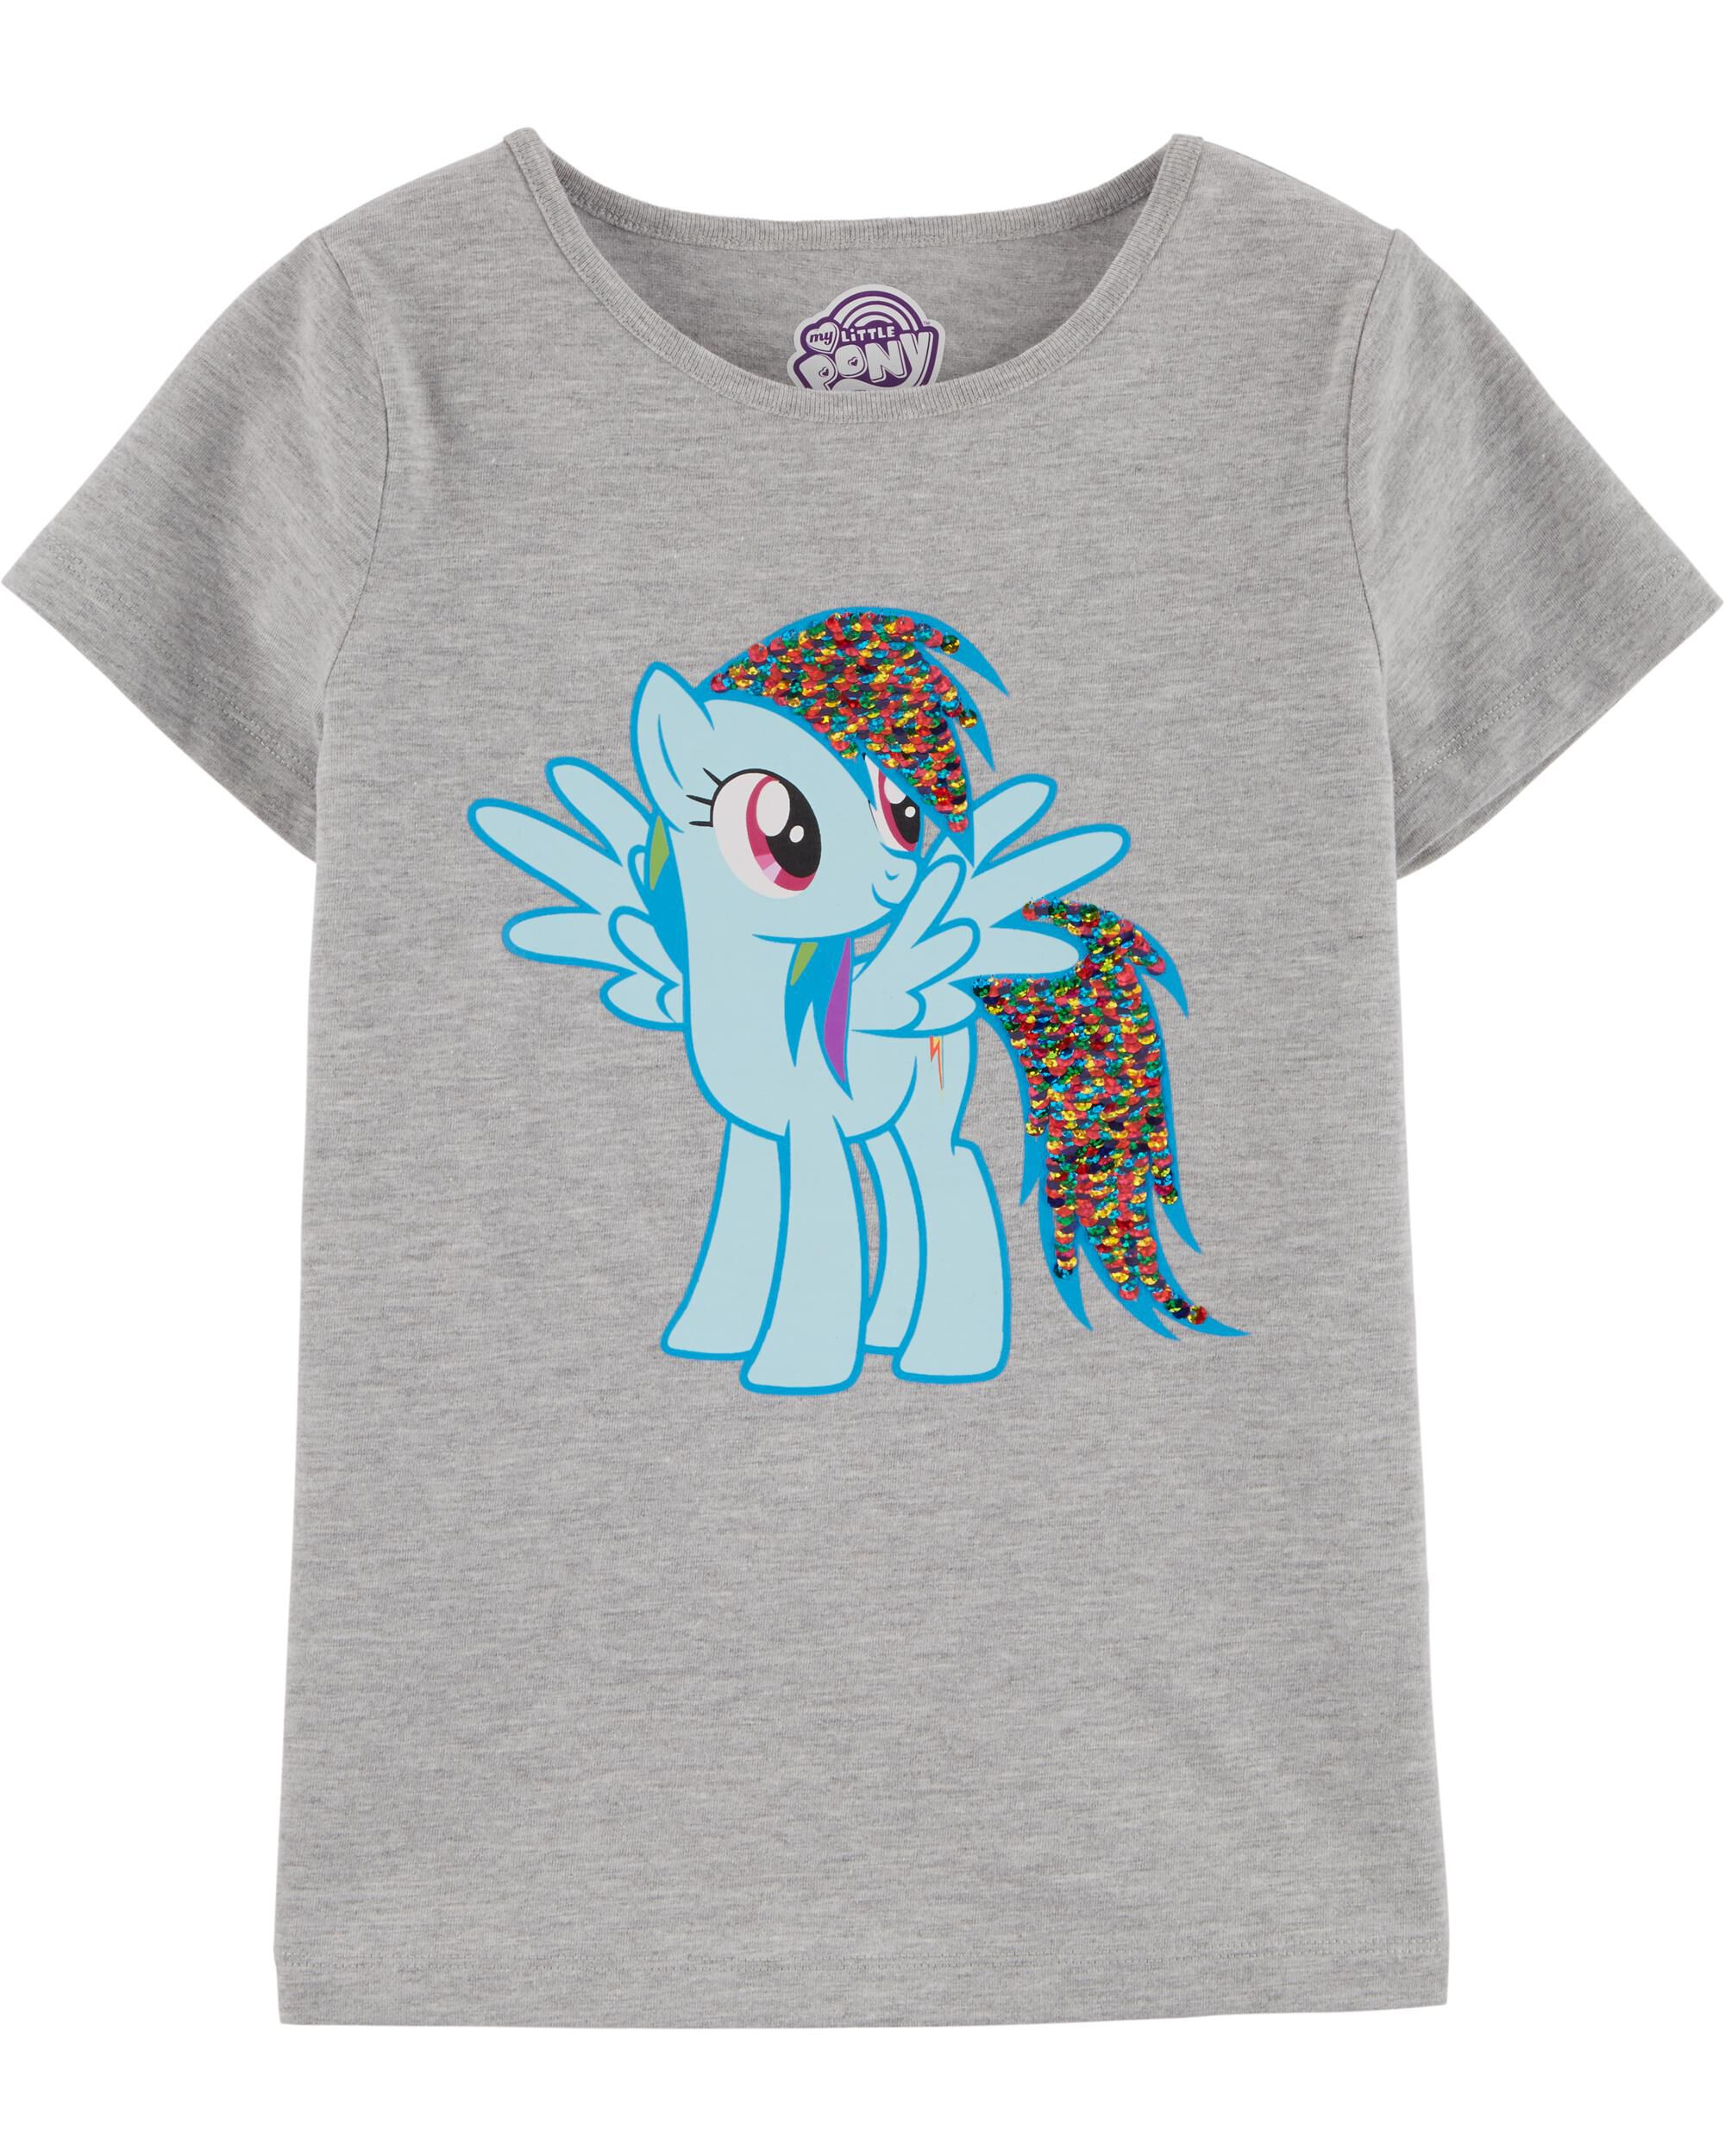 My Little Pony Girls Blue Two-Piece Legging Set Size 2T 3T 4T 4 5 6 6X